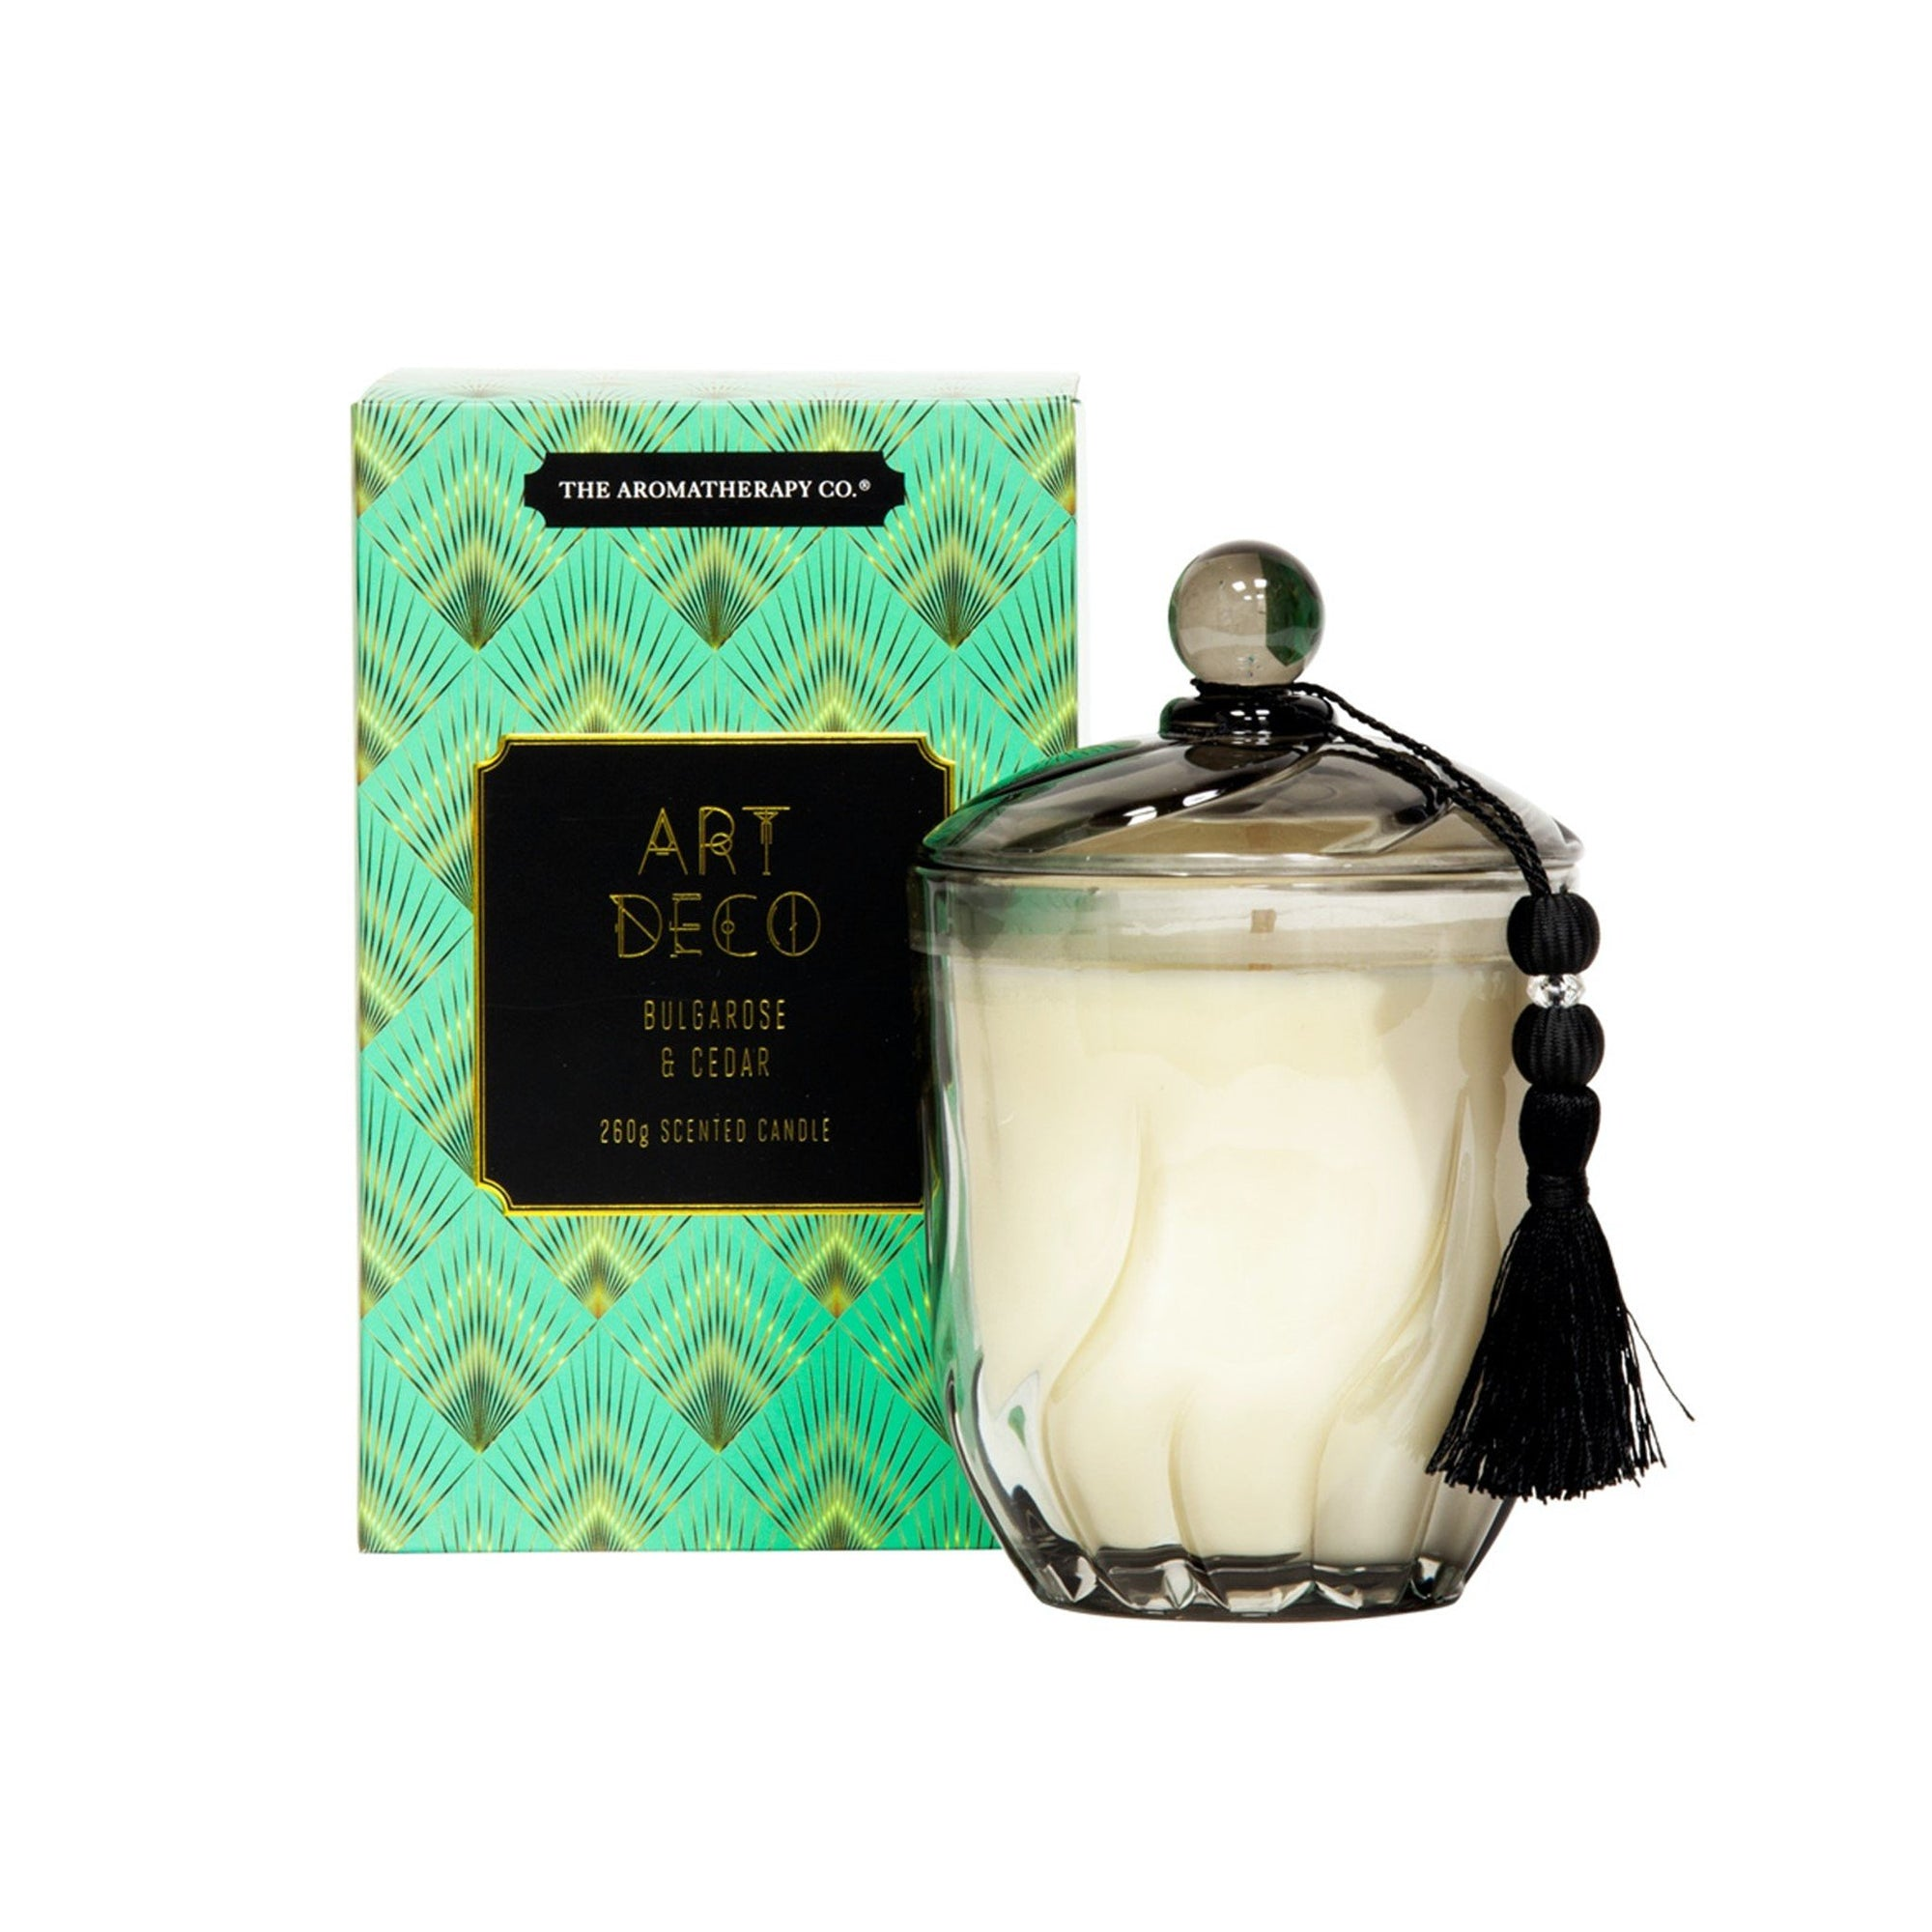 The Aromatherapy Co. Art Deco Candle Bulgarose & Cedar 260g